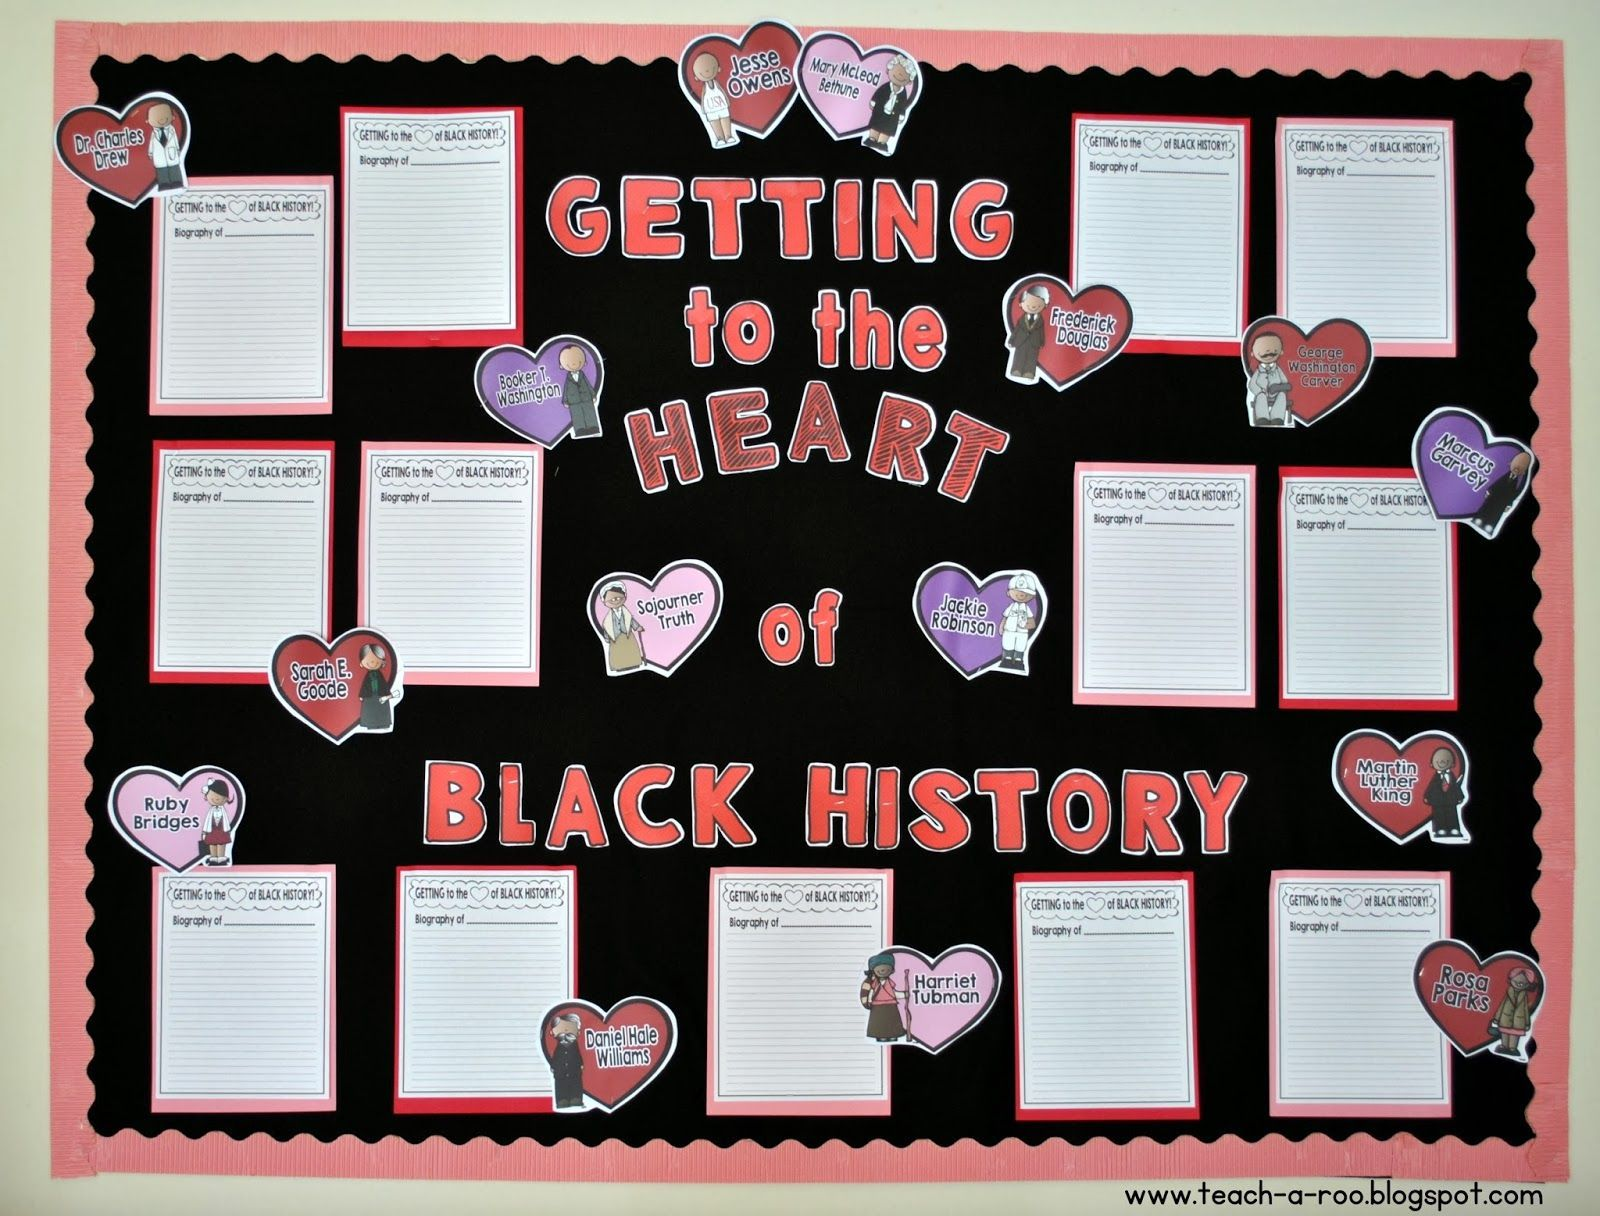 printable word games for black history month black words and getting to the heart of black history month bie